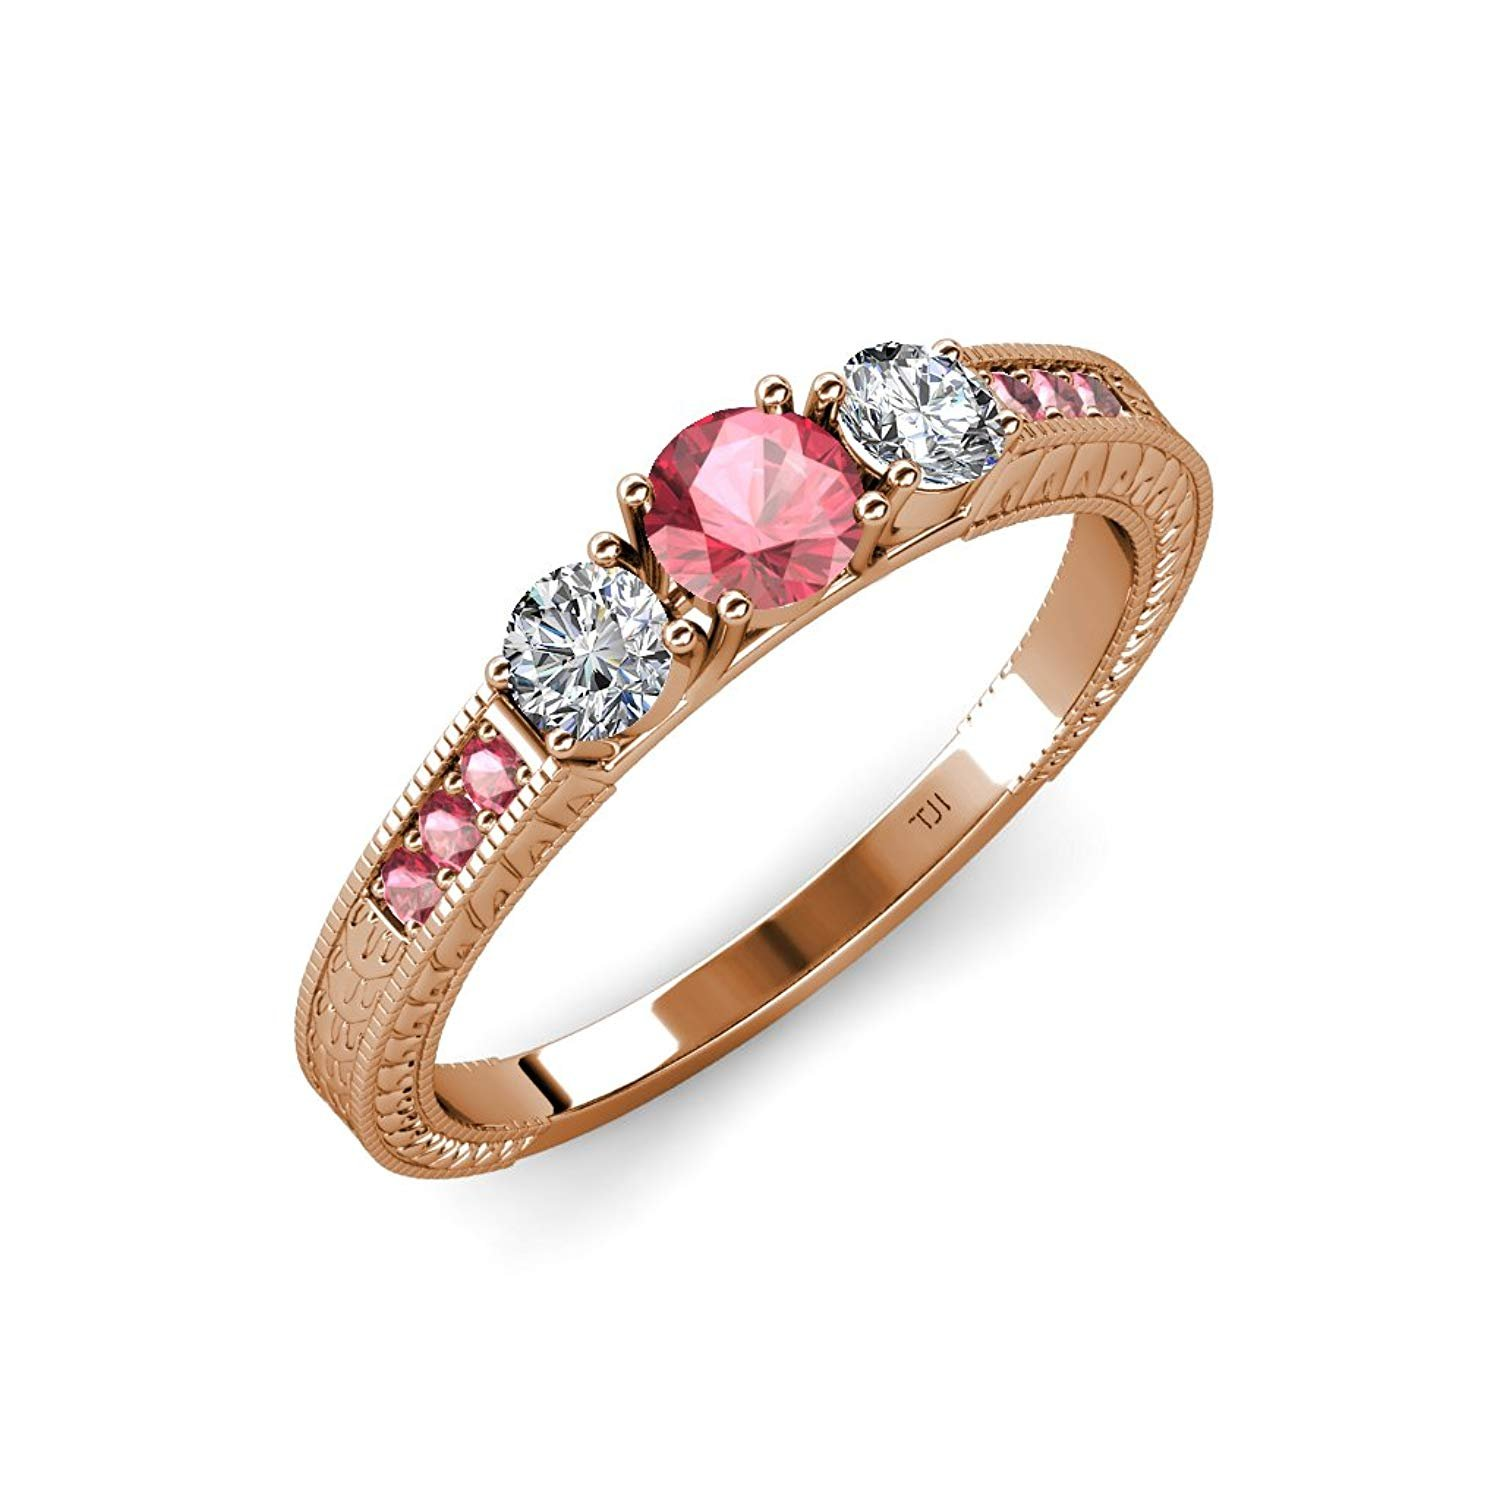 Pink Tourmaline and Diamond 3 Stone Ring with Side Pink Tourmaline 0.85 ct tw 14K Rose Gold.size 6.0 by TriJewels